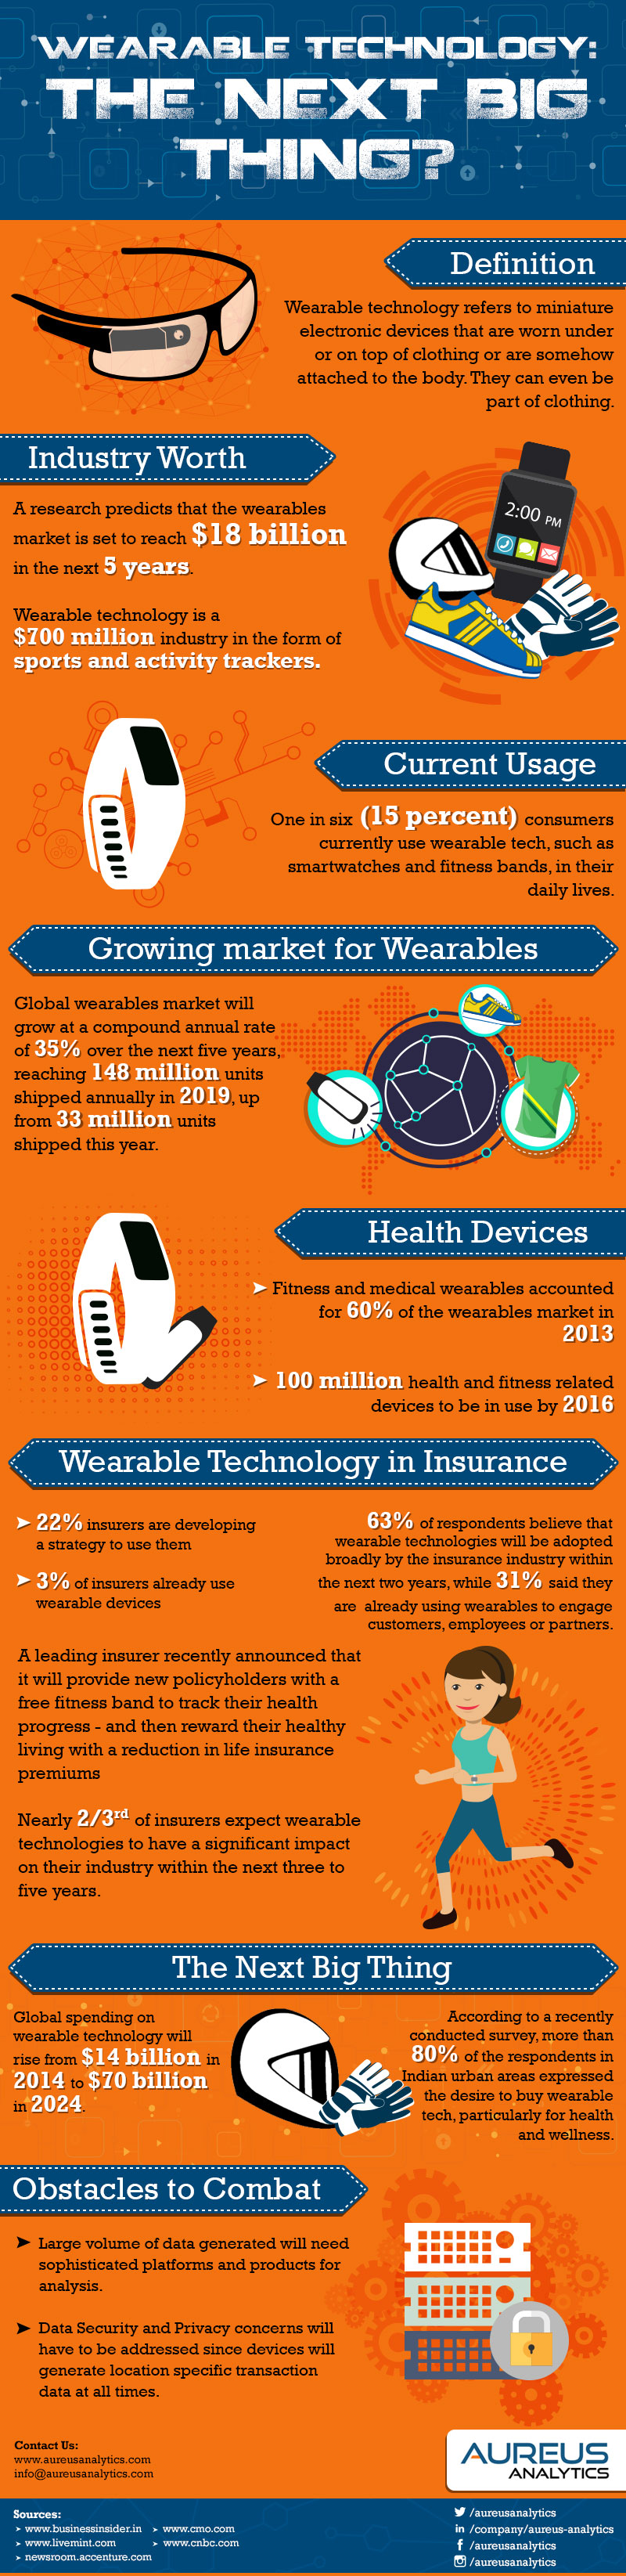 Wearable Technology: The Next Big Thing?